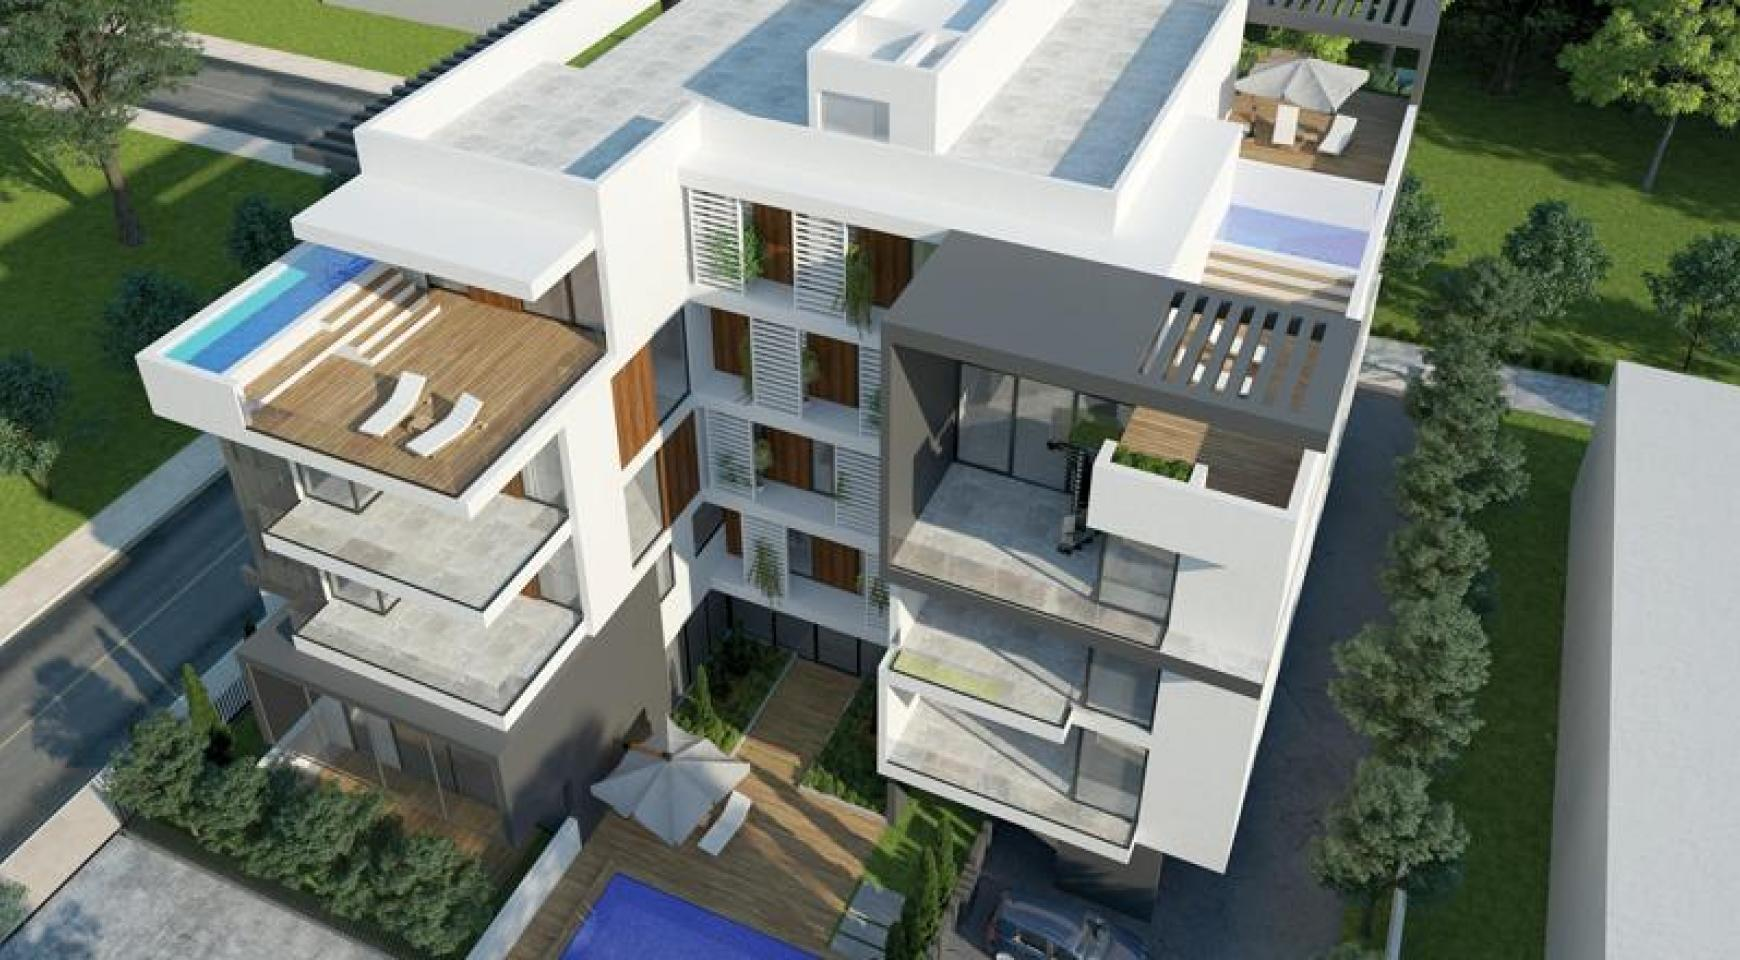 New 2 Bedroom Apartment with Roof Garden in a Contemporary Complex  - 1